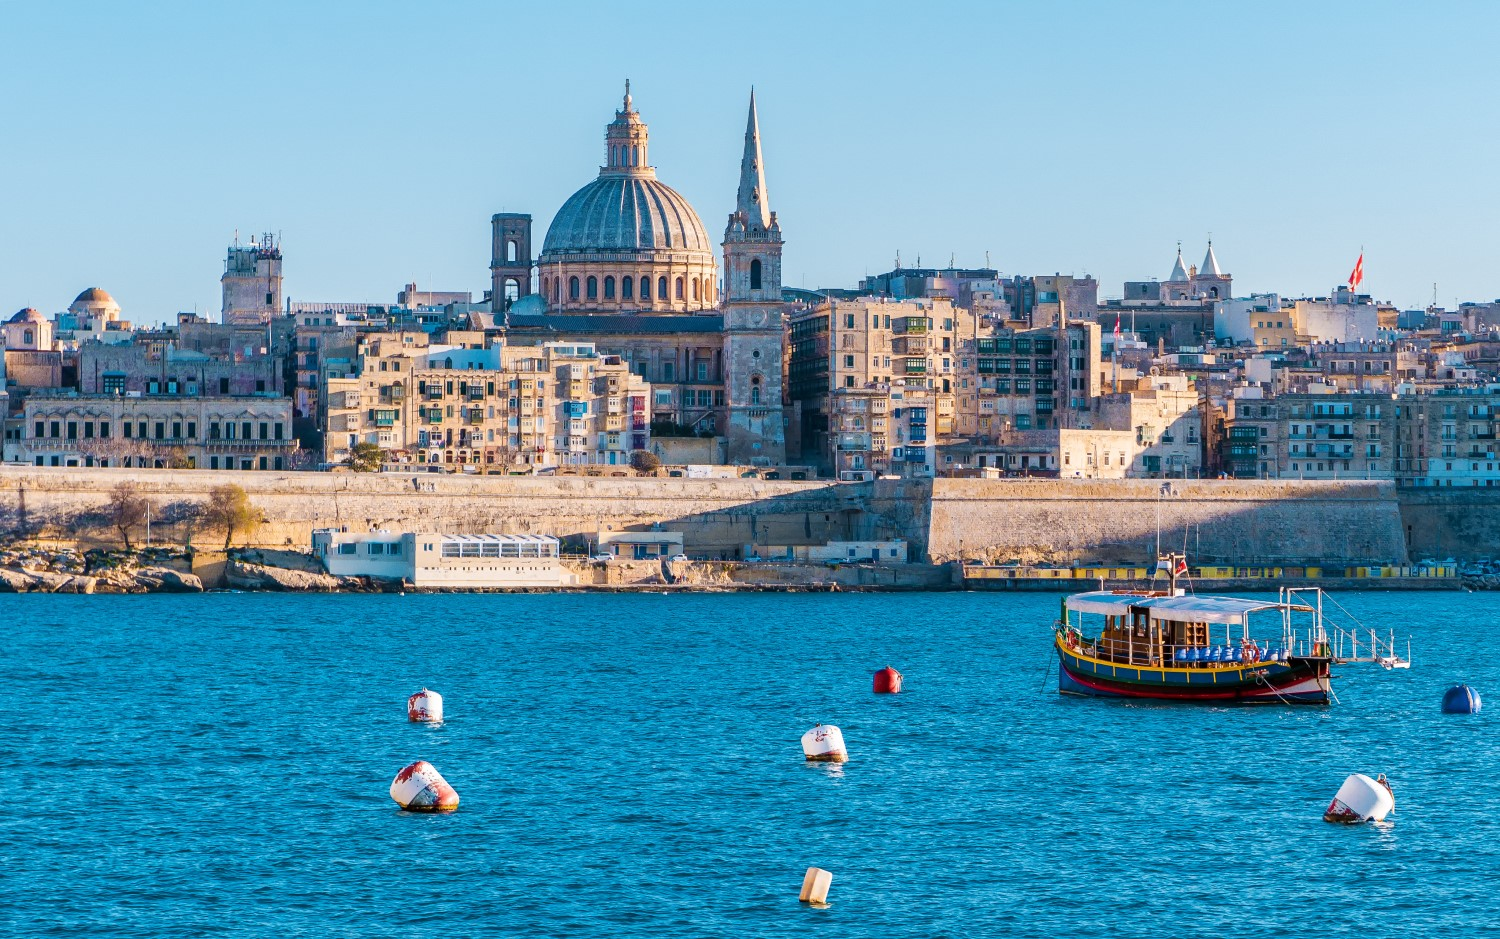 Binance Is Not Under Our Jurisdiction, Says Malta Regulator - CoinDesk